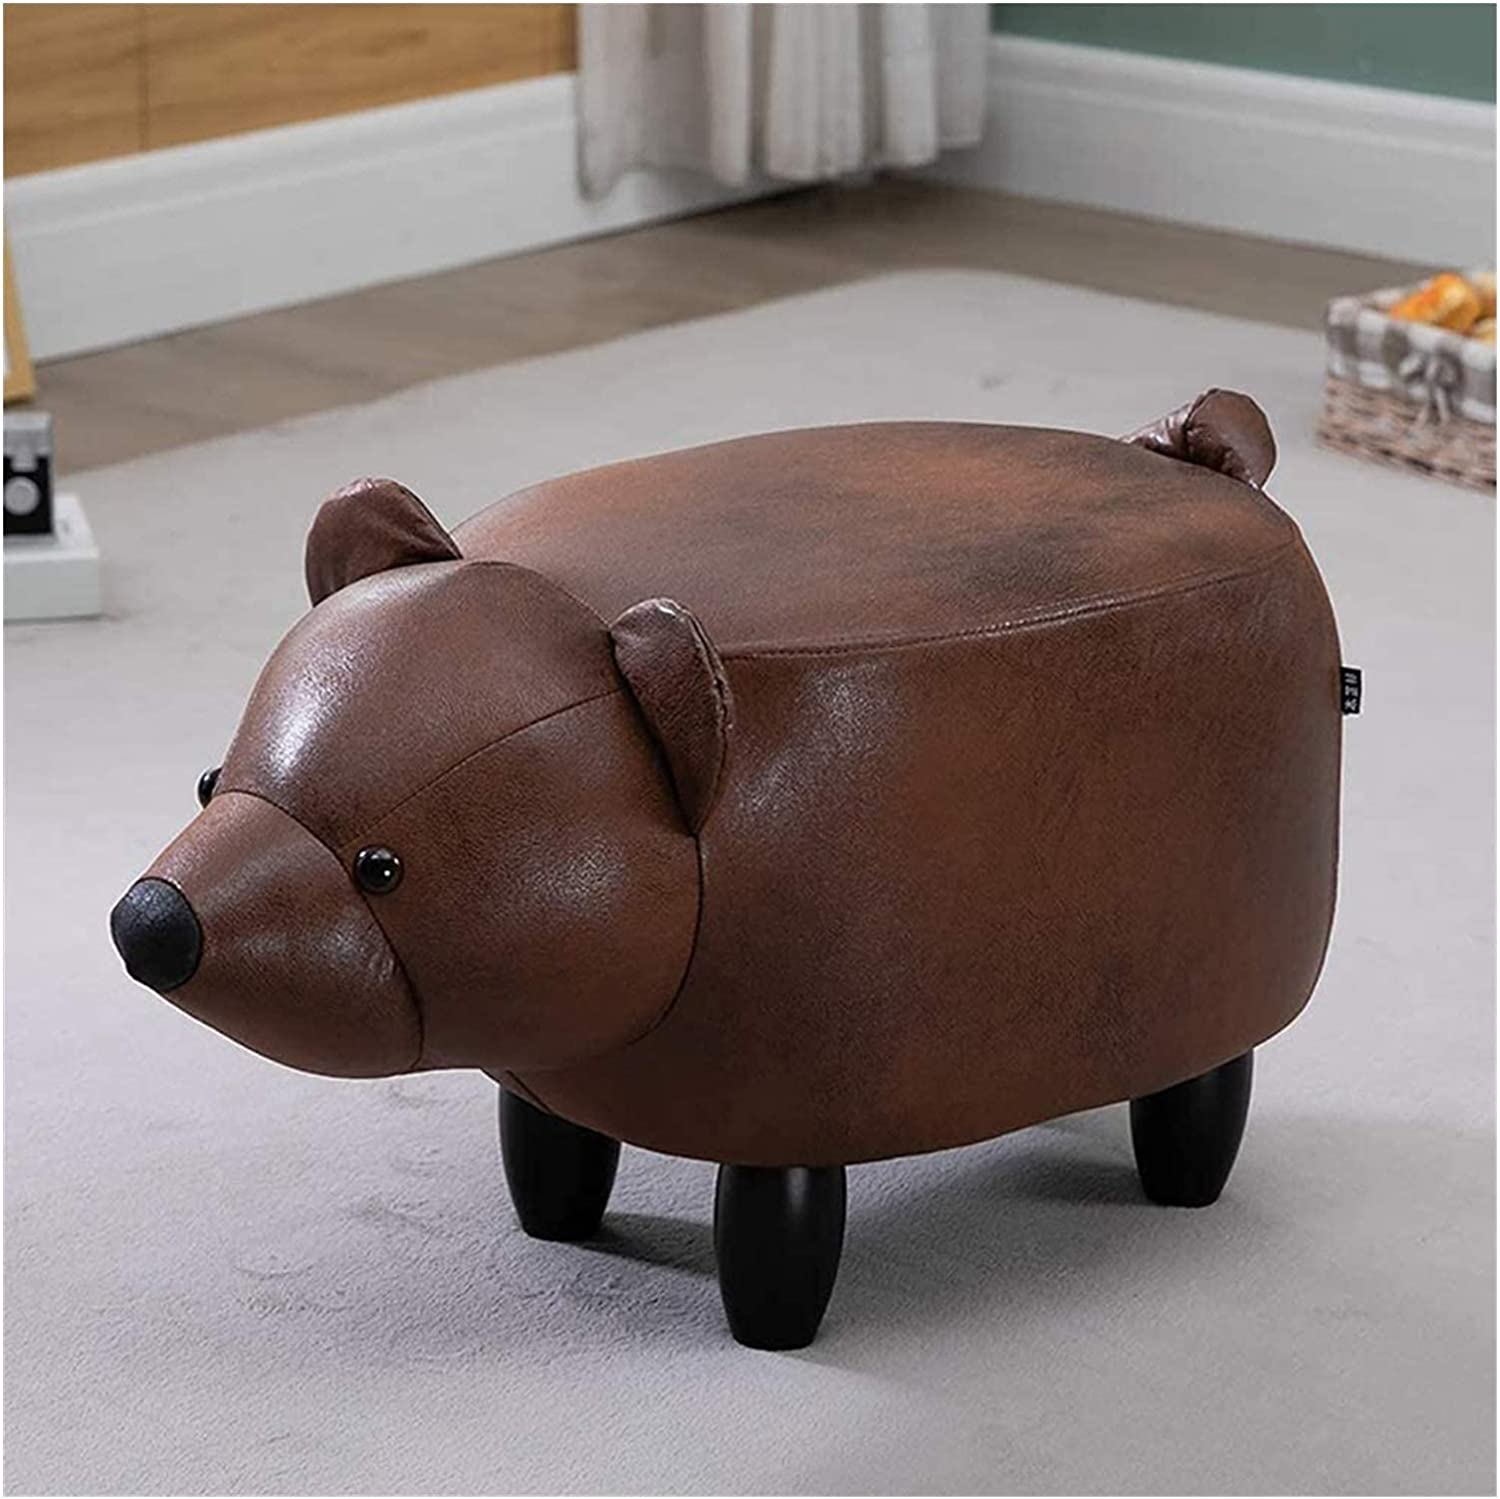 KDRICH Portable Household Stool Small Animal S Leather Kid Bench Popular product Baltimore Mall